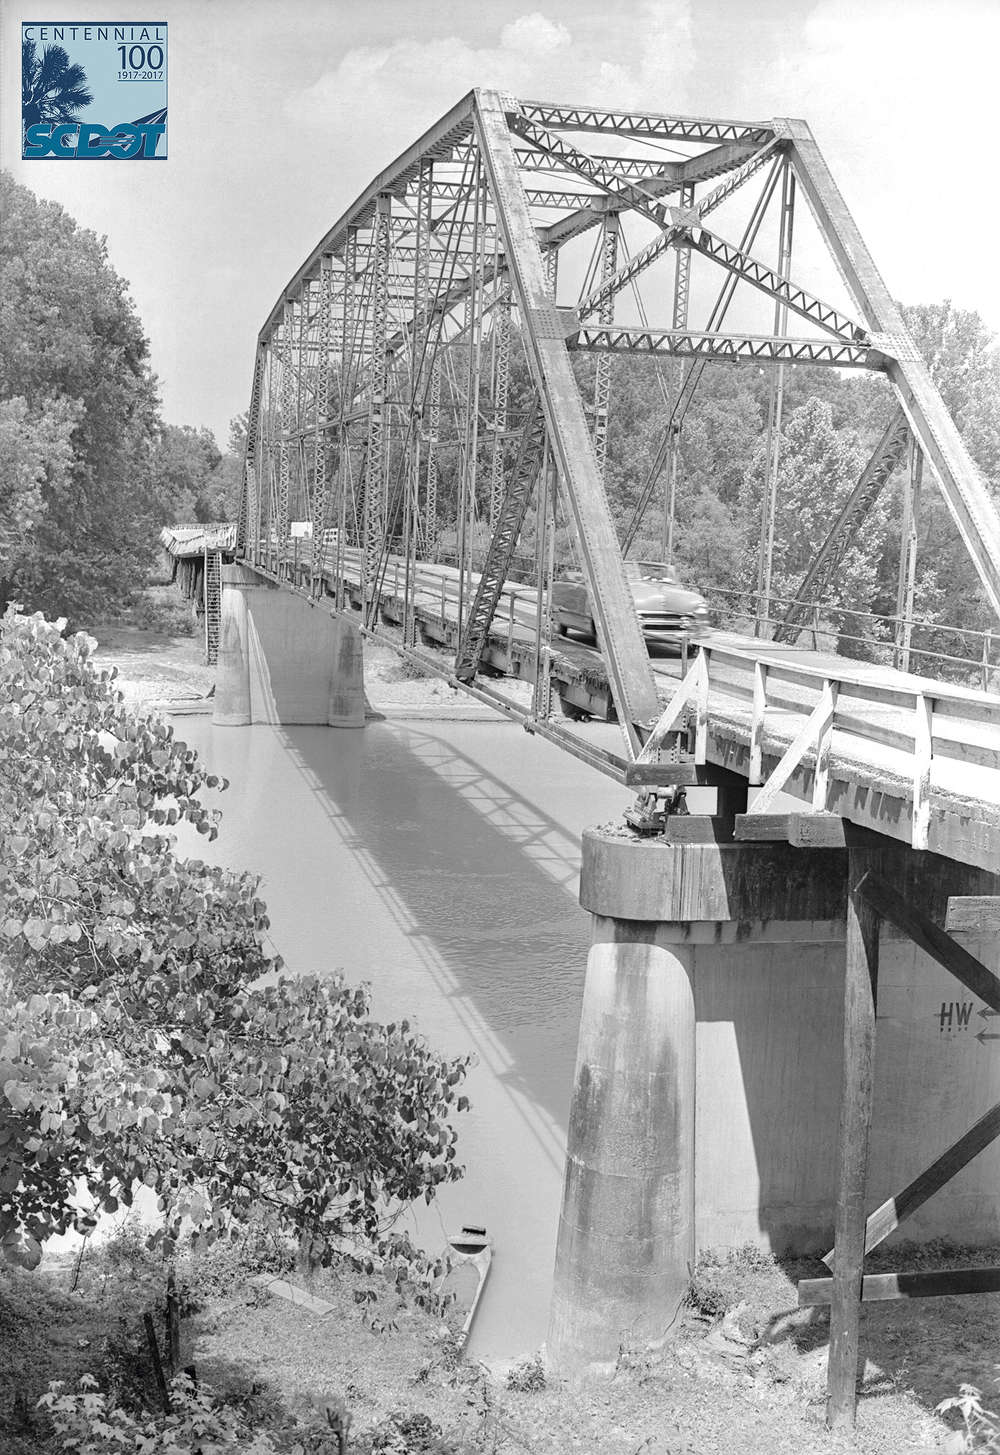 Godfrey's Ferry Bridge (U.S. 378) over the Great Pee Dee River, bordering Florence and Marion counties, in 1951. (SCDOT Photo Archive)